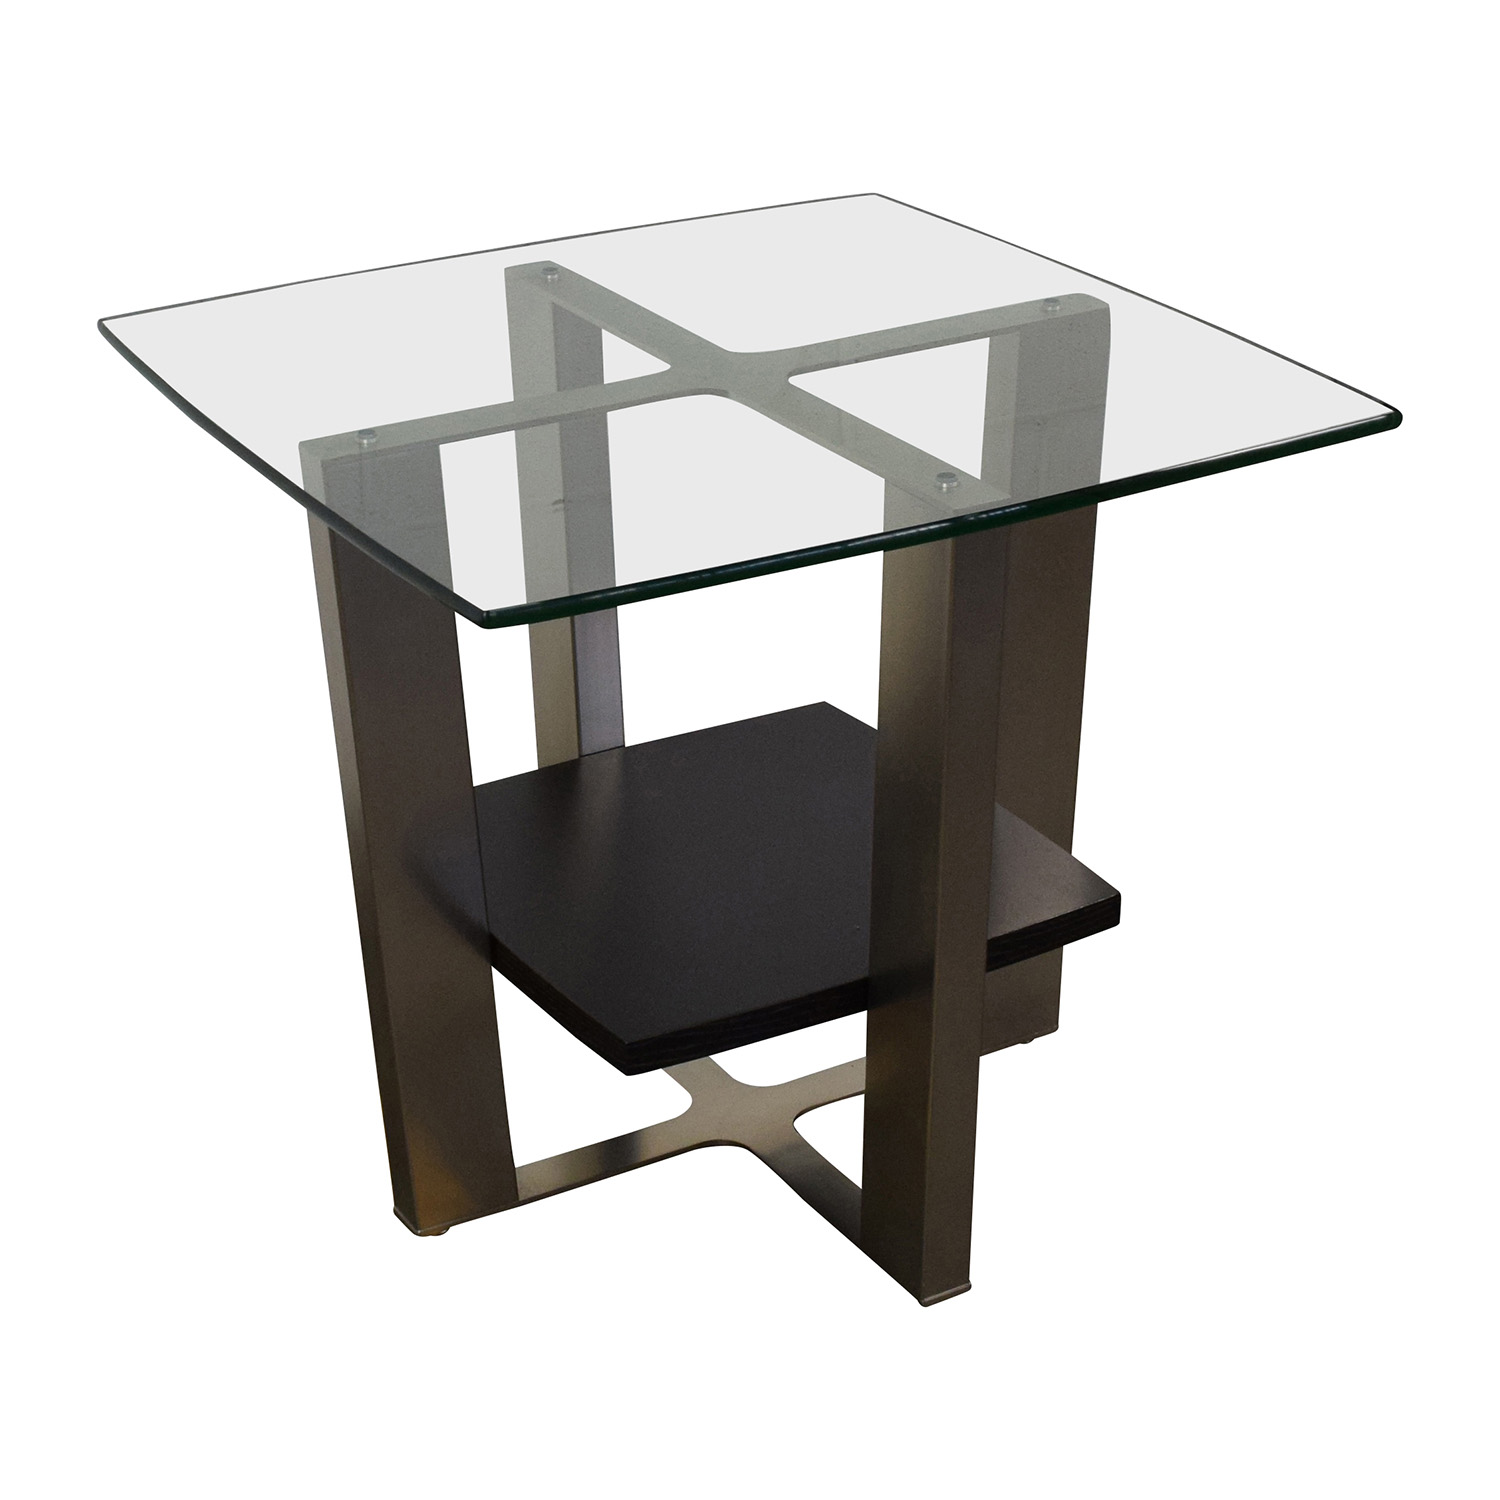 off  jensen lewis jensen lewis glass top and chrome end table  -  jensen lewis jensen lewis glass top and chrome end table second hand